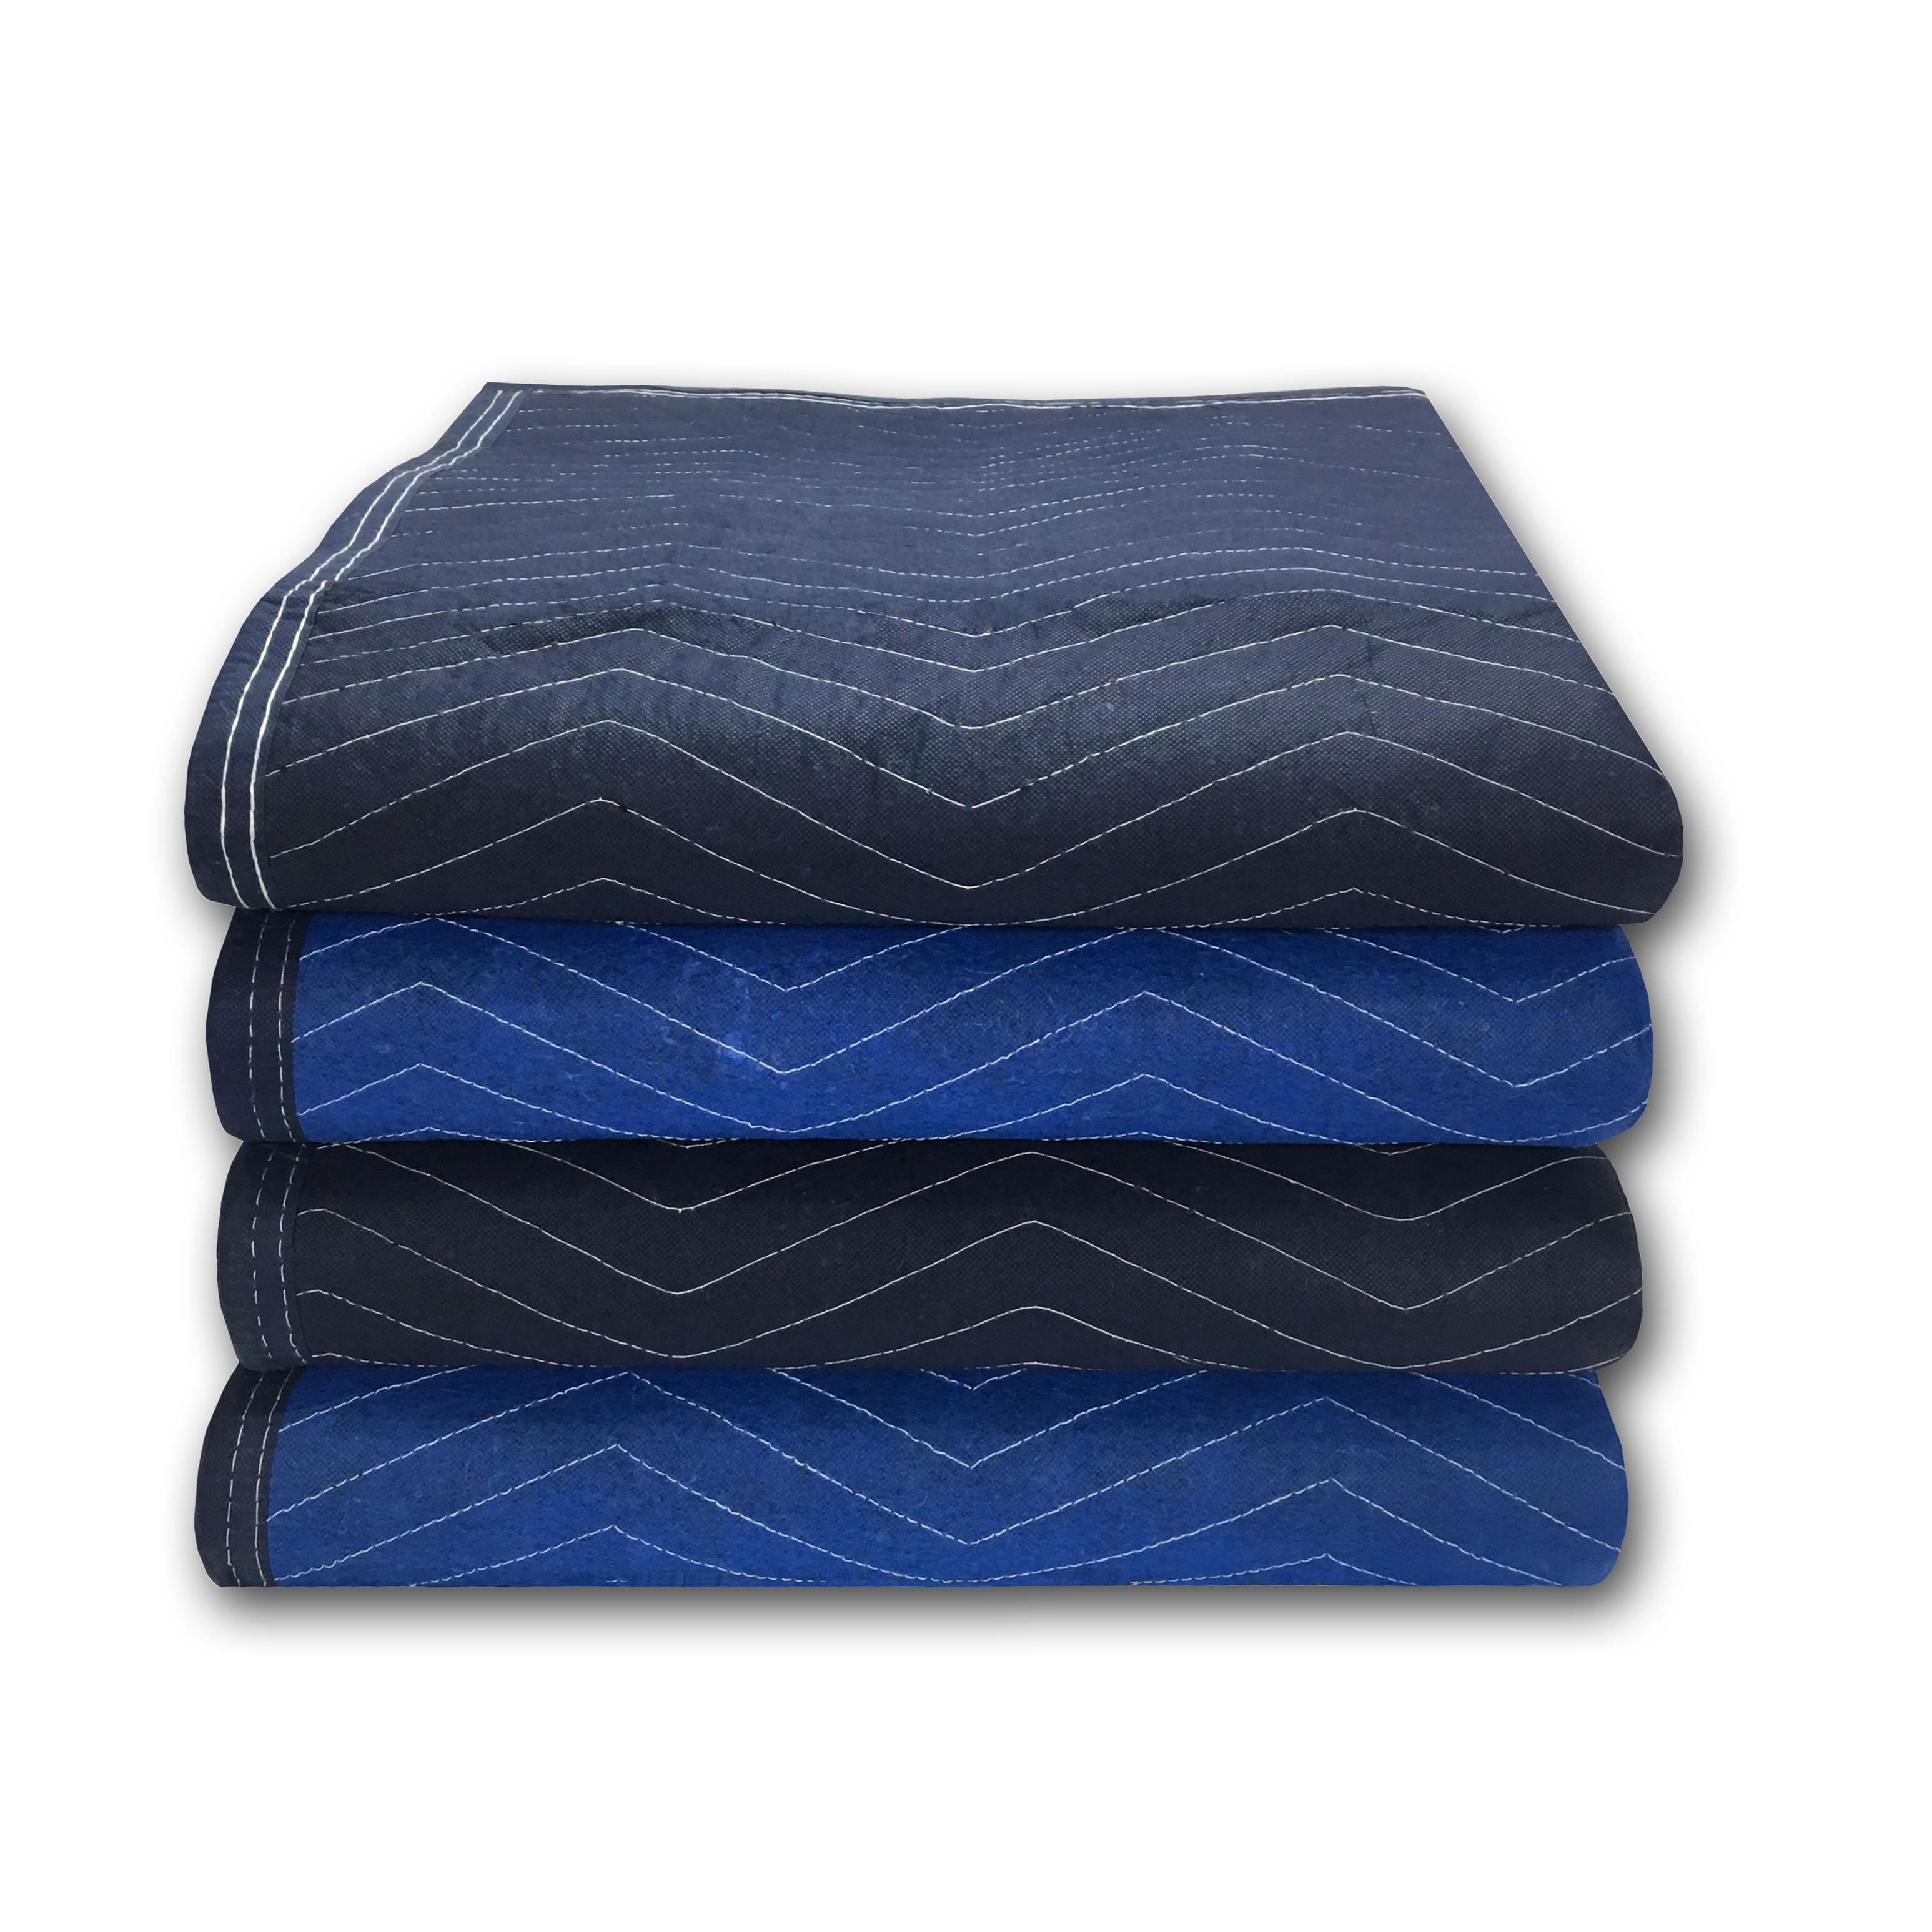 Uboxes Supreme Moving Blankets, 72 x 80 in, 6.67lbs each, 4 Pack